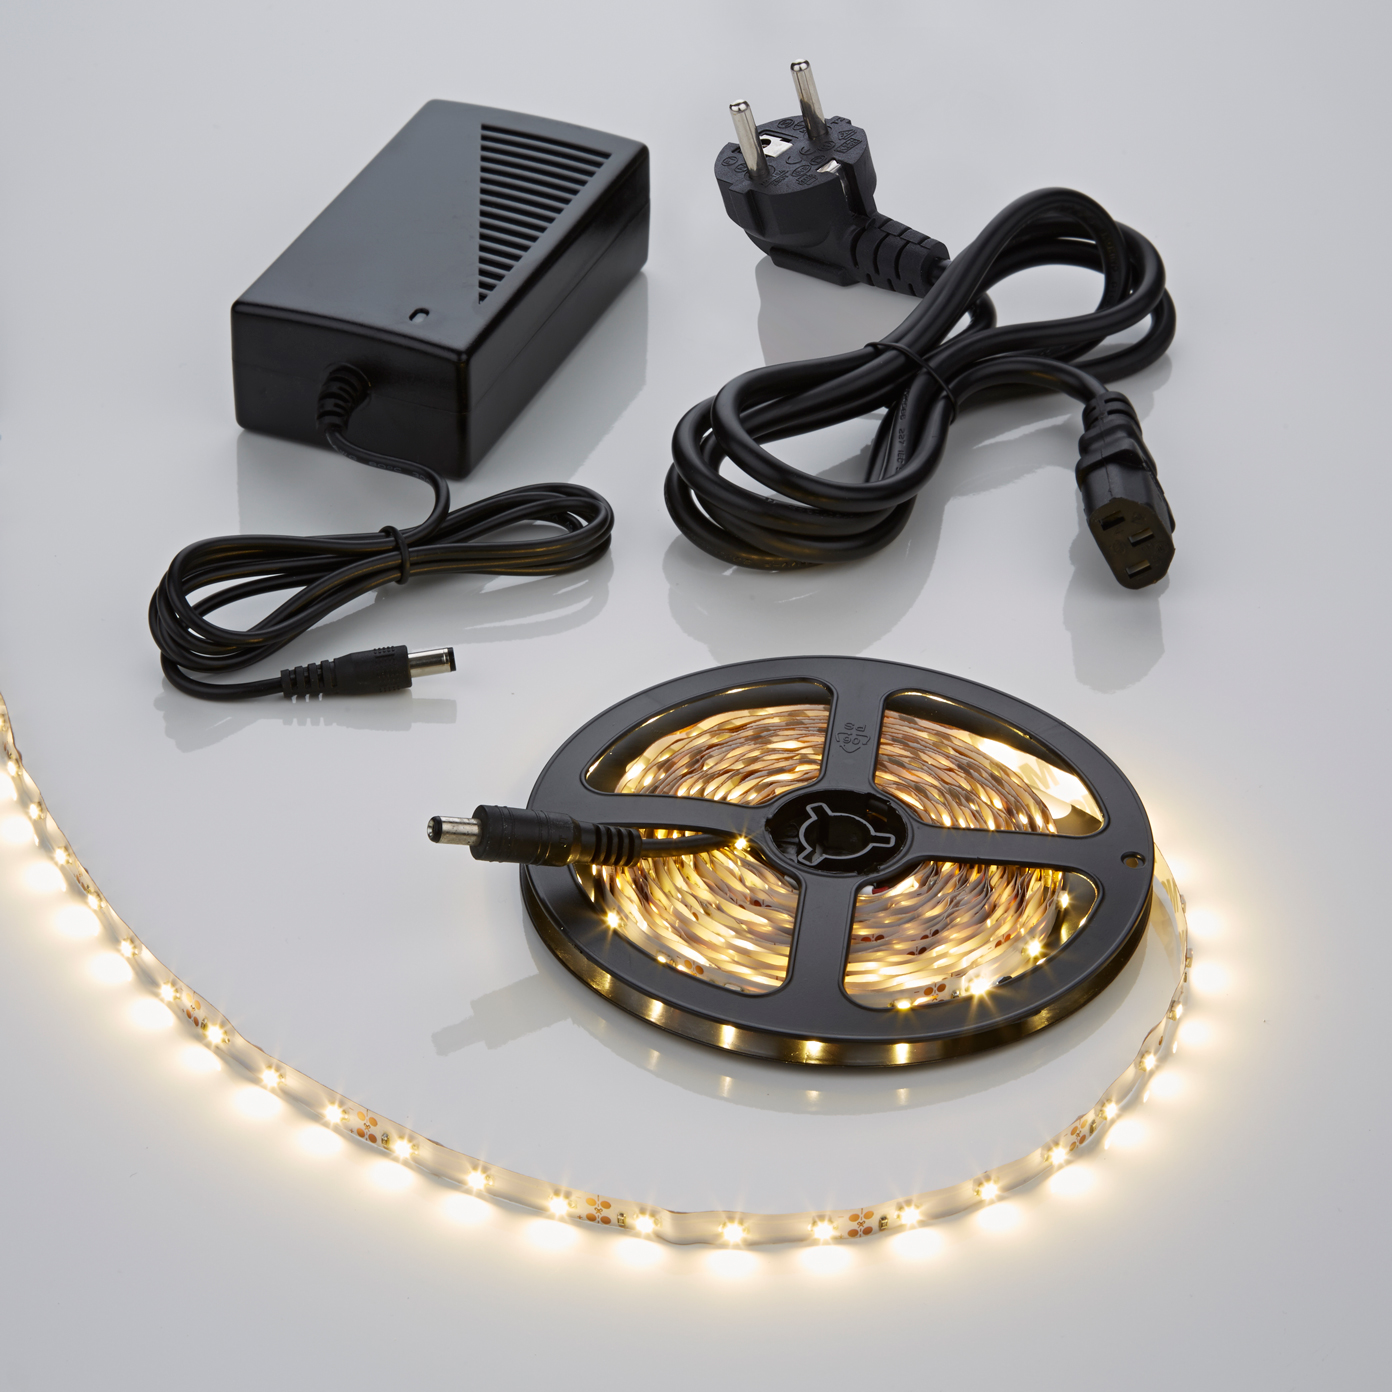 Biard IP20 3528 LED strip verlichting incl Driver & Kabel - 5 meter - Warm Wit